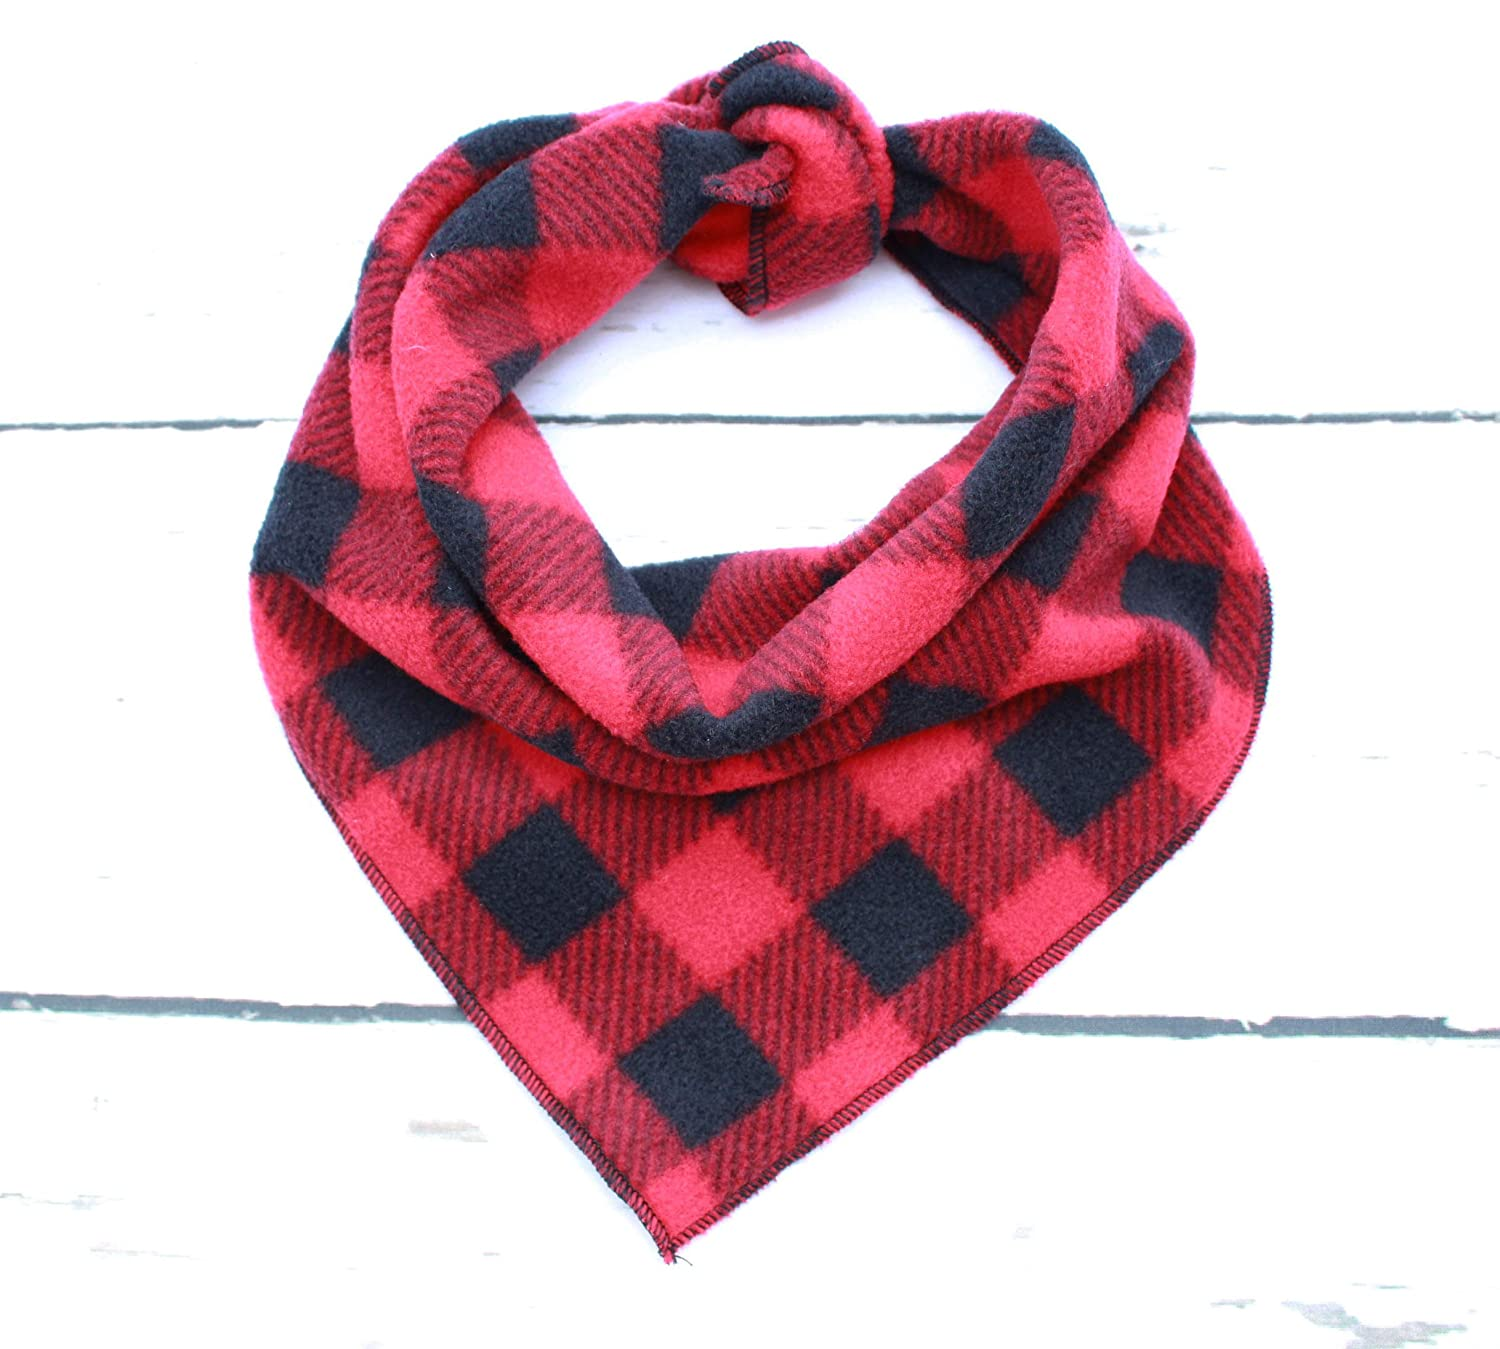 Small//Medium One Size Pet Pooch Boutique Red /& Black Check Fleece Bandana for Dog